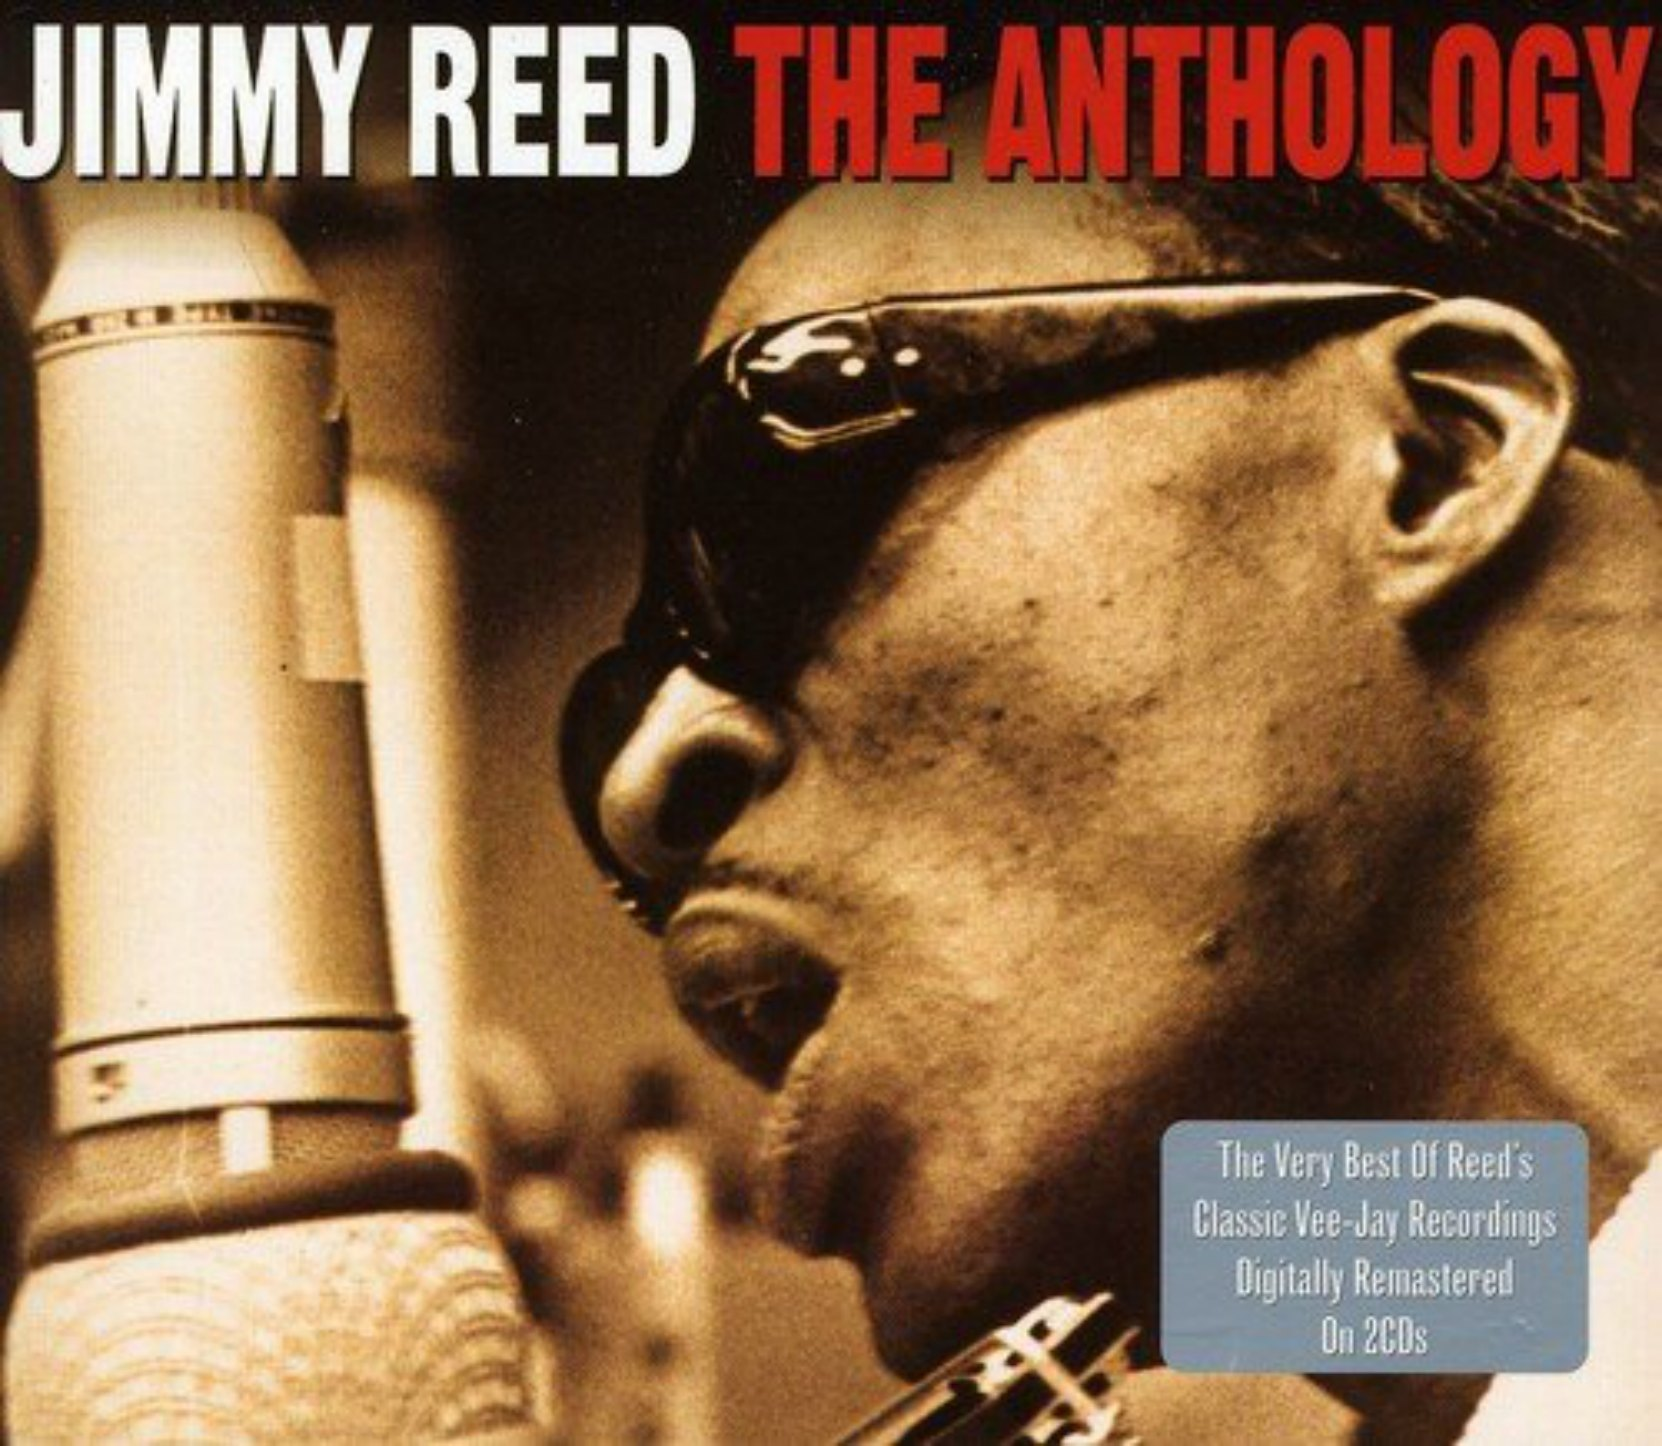 CD cover, Jimmy Reed, The Anthology, released on the Not Now Music label